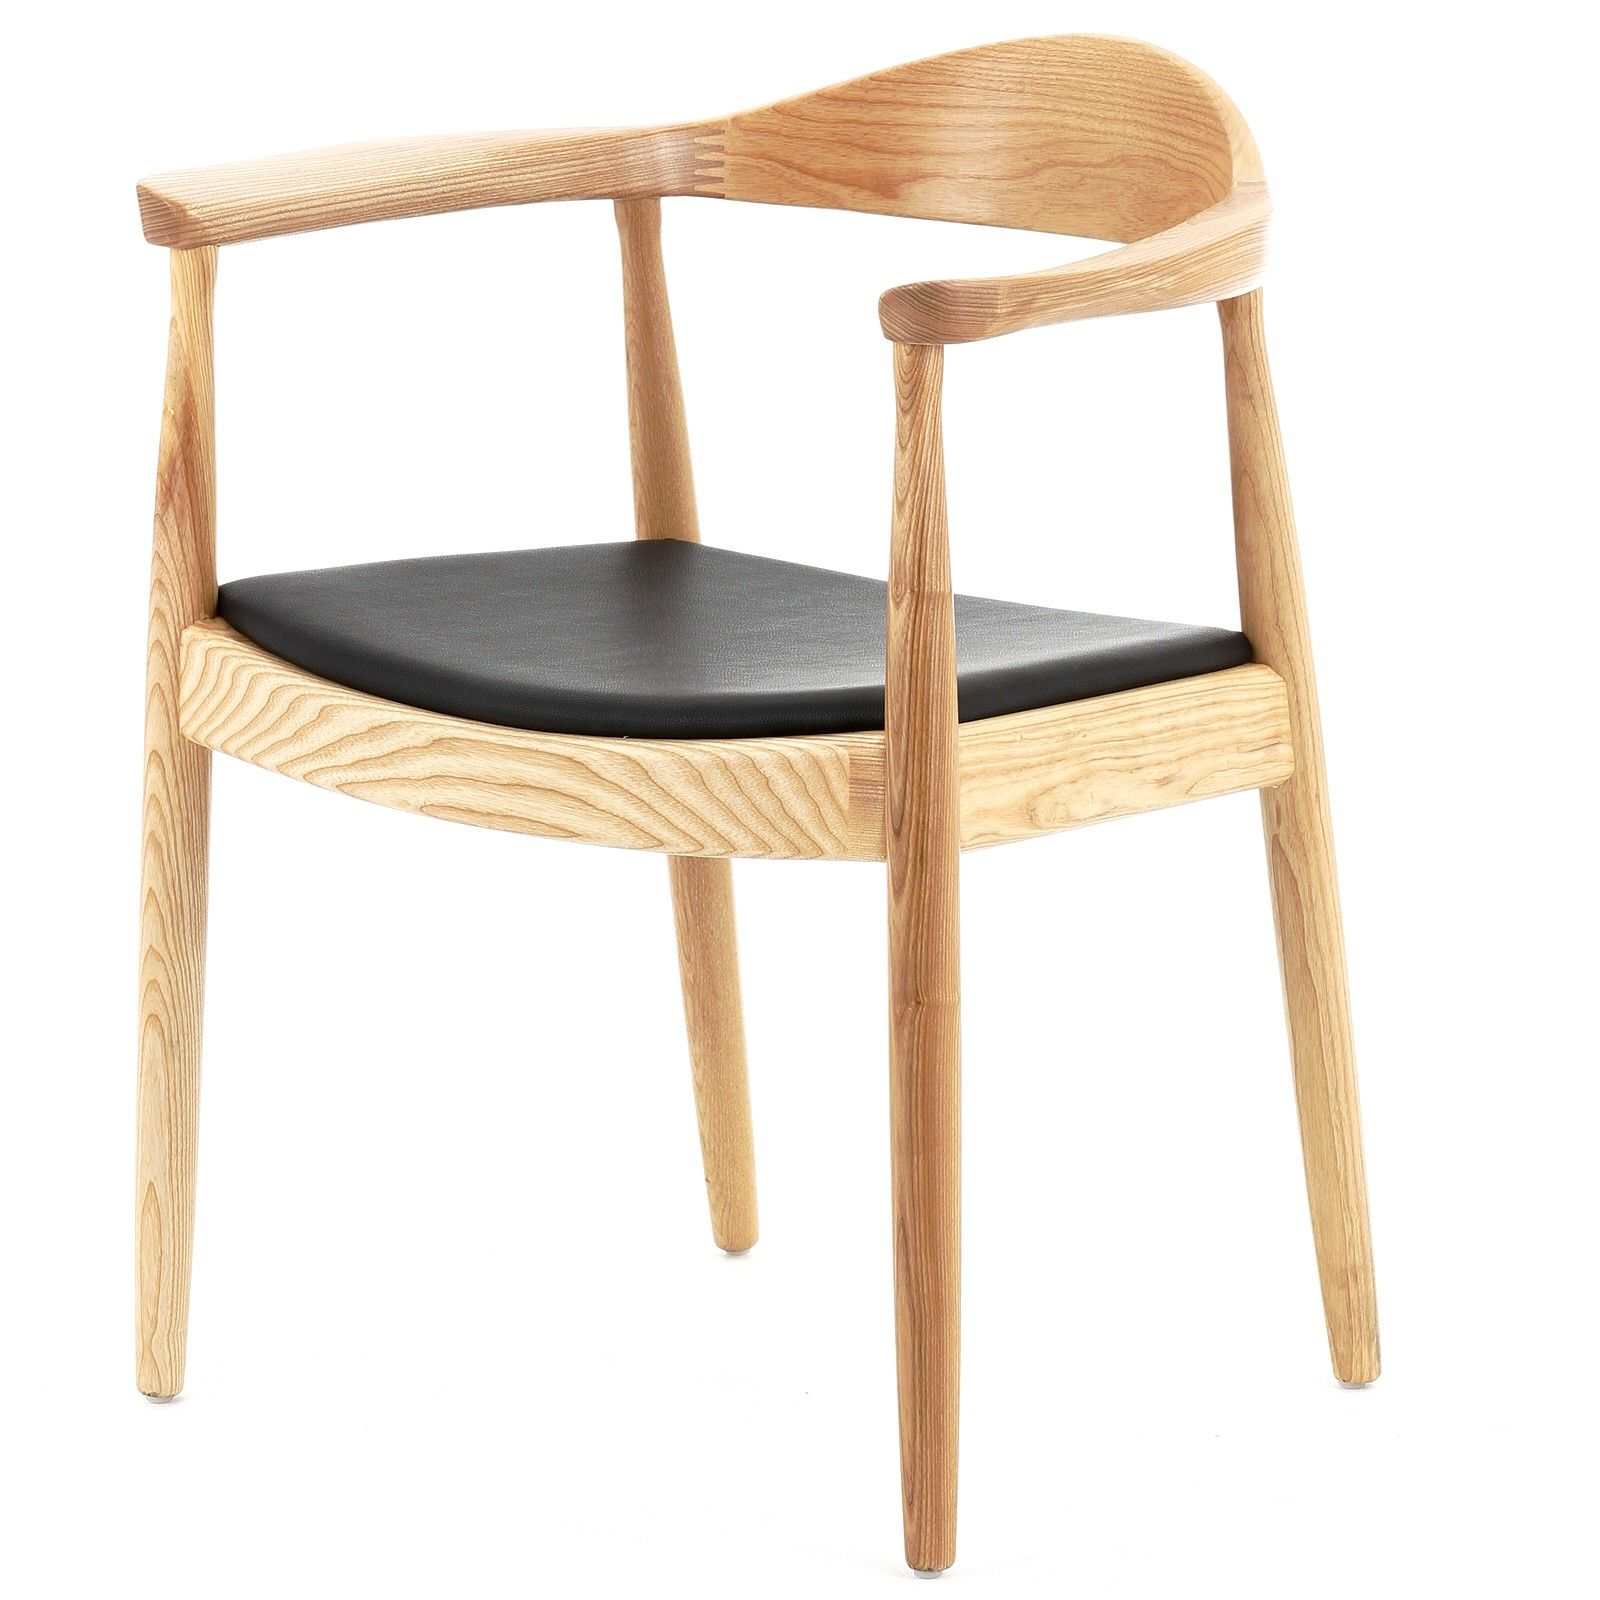 Marvelous Replica Hans Wegner Round Ash Chair | Dining Chairs | Nick Scali Online  Nick Scali Online